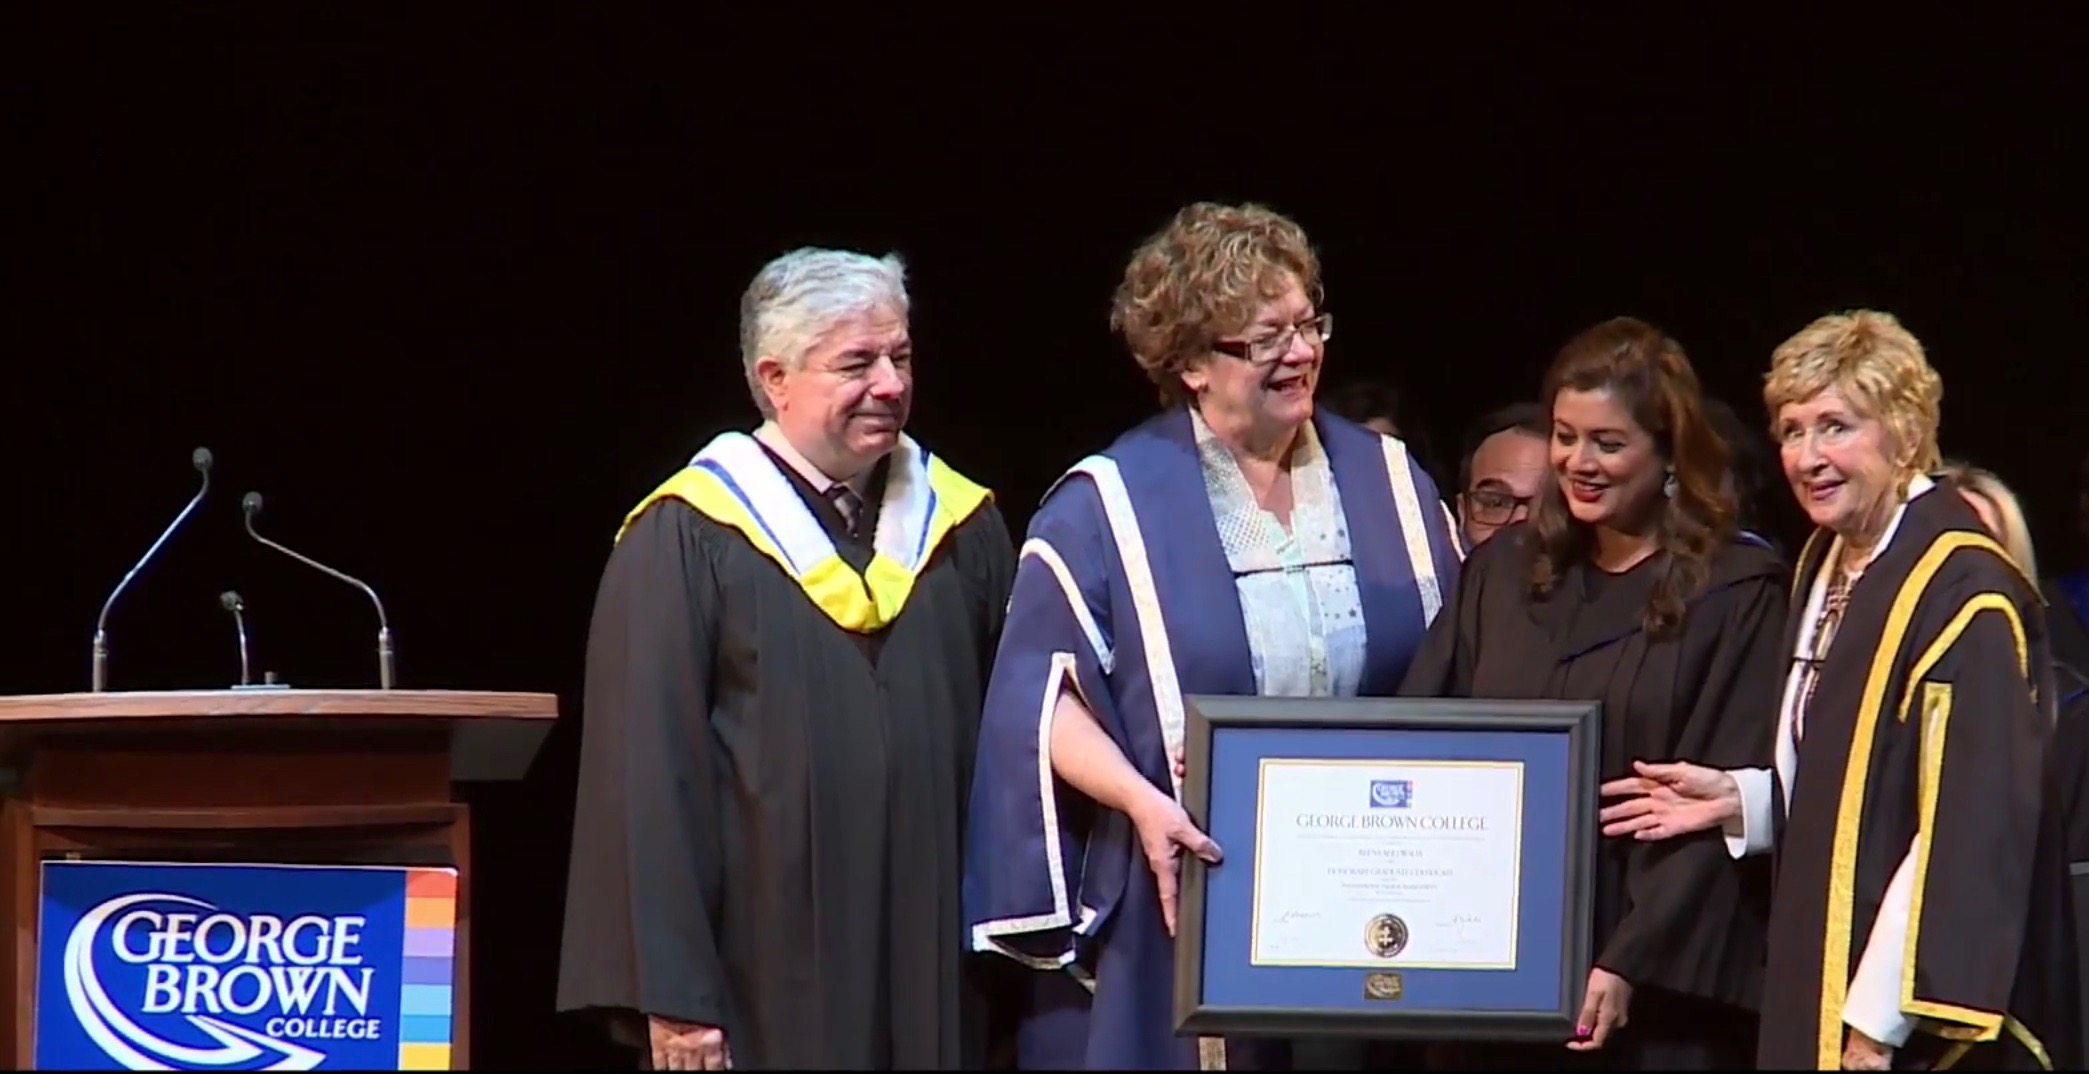 Reena Ahluwalia Recieving Fellow Award_Honarary Degree_George Brown College 1.jpg